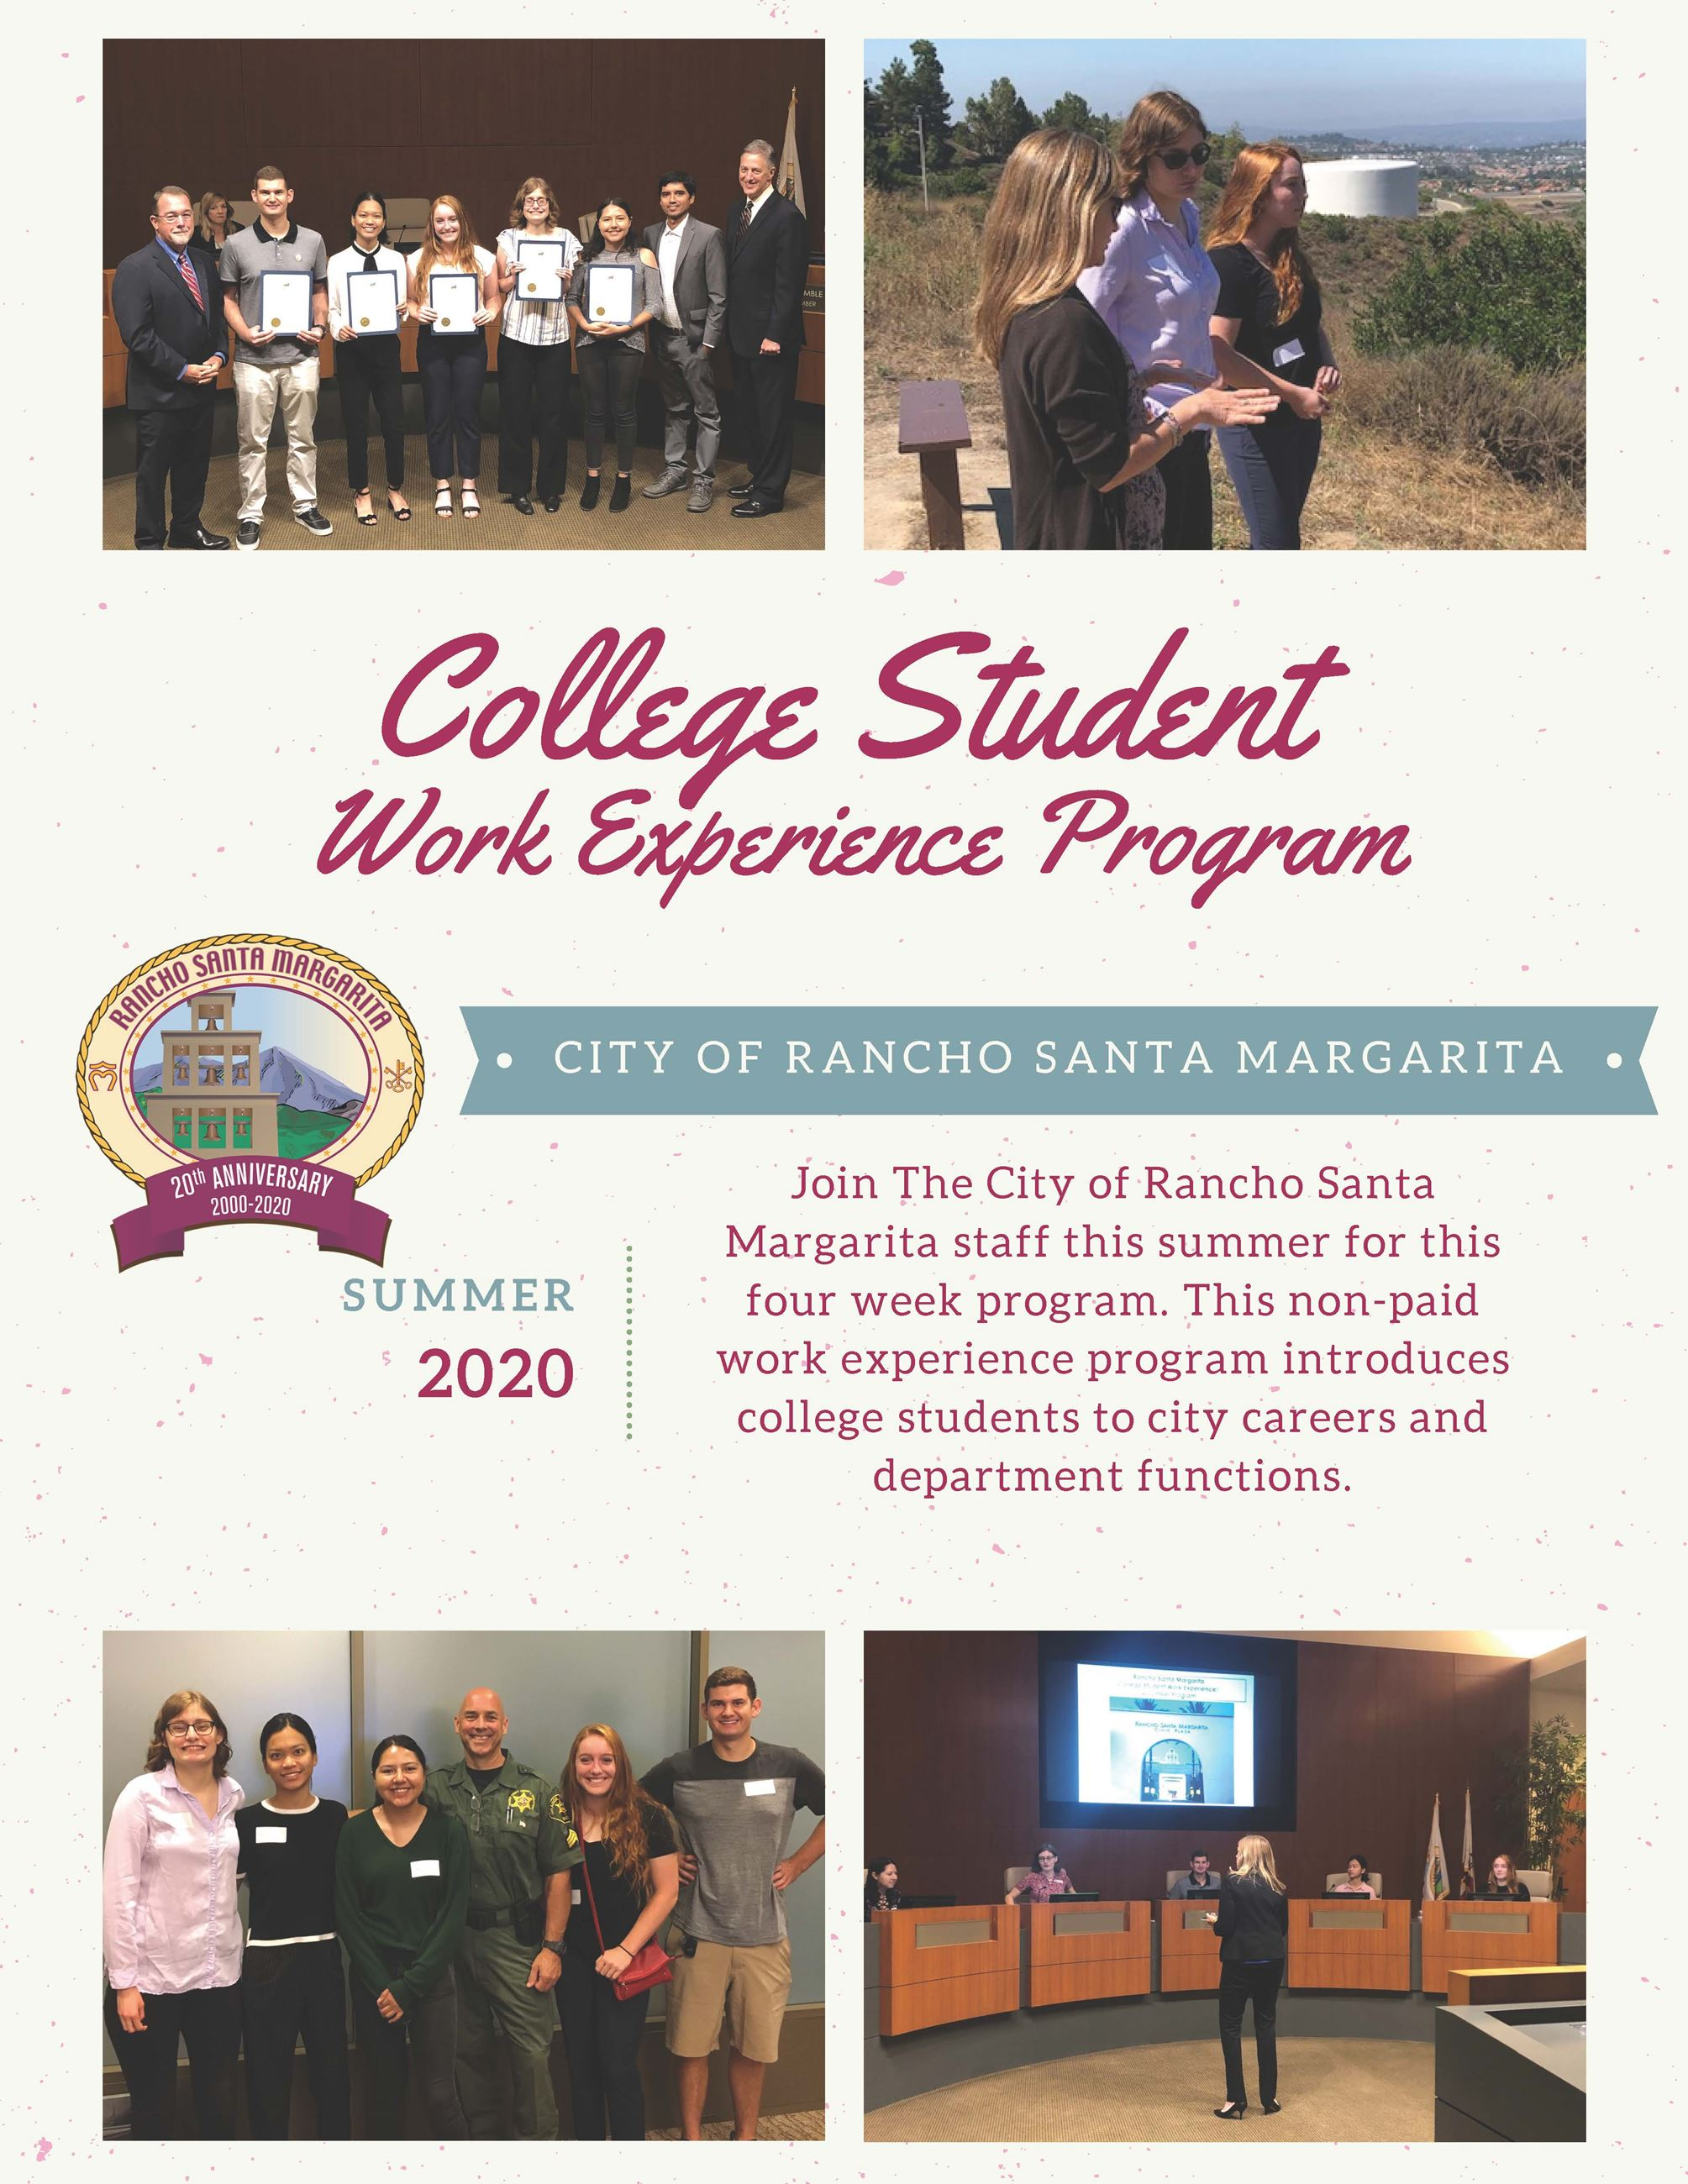 College Student Work Experience Program Flyer 20_Page_1